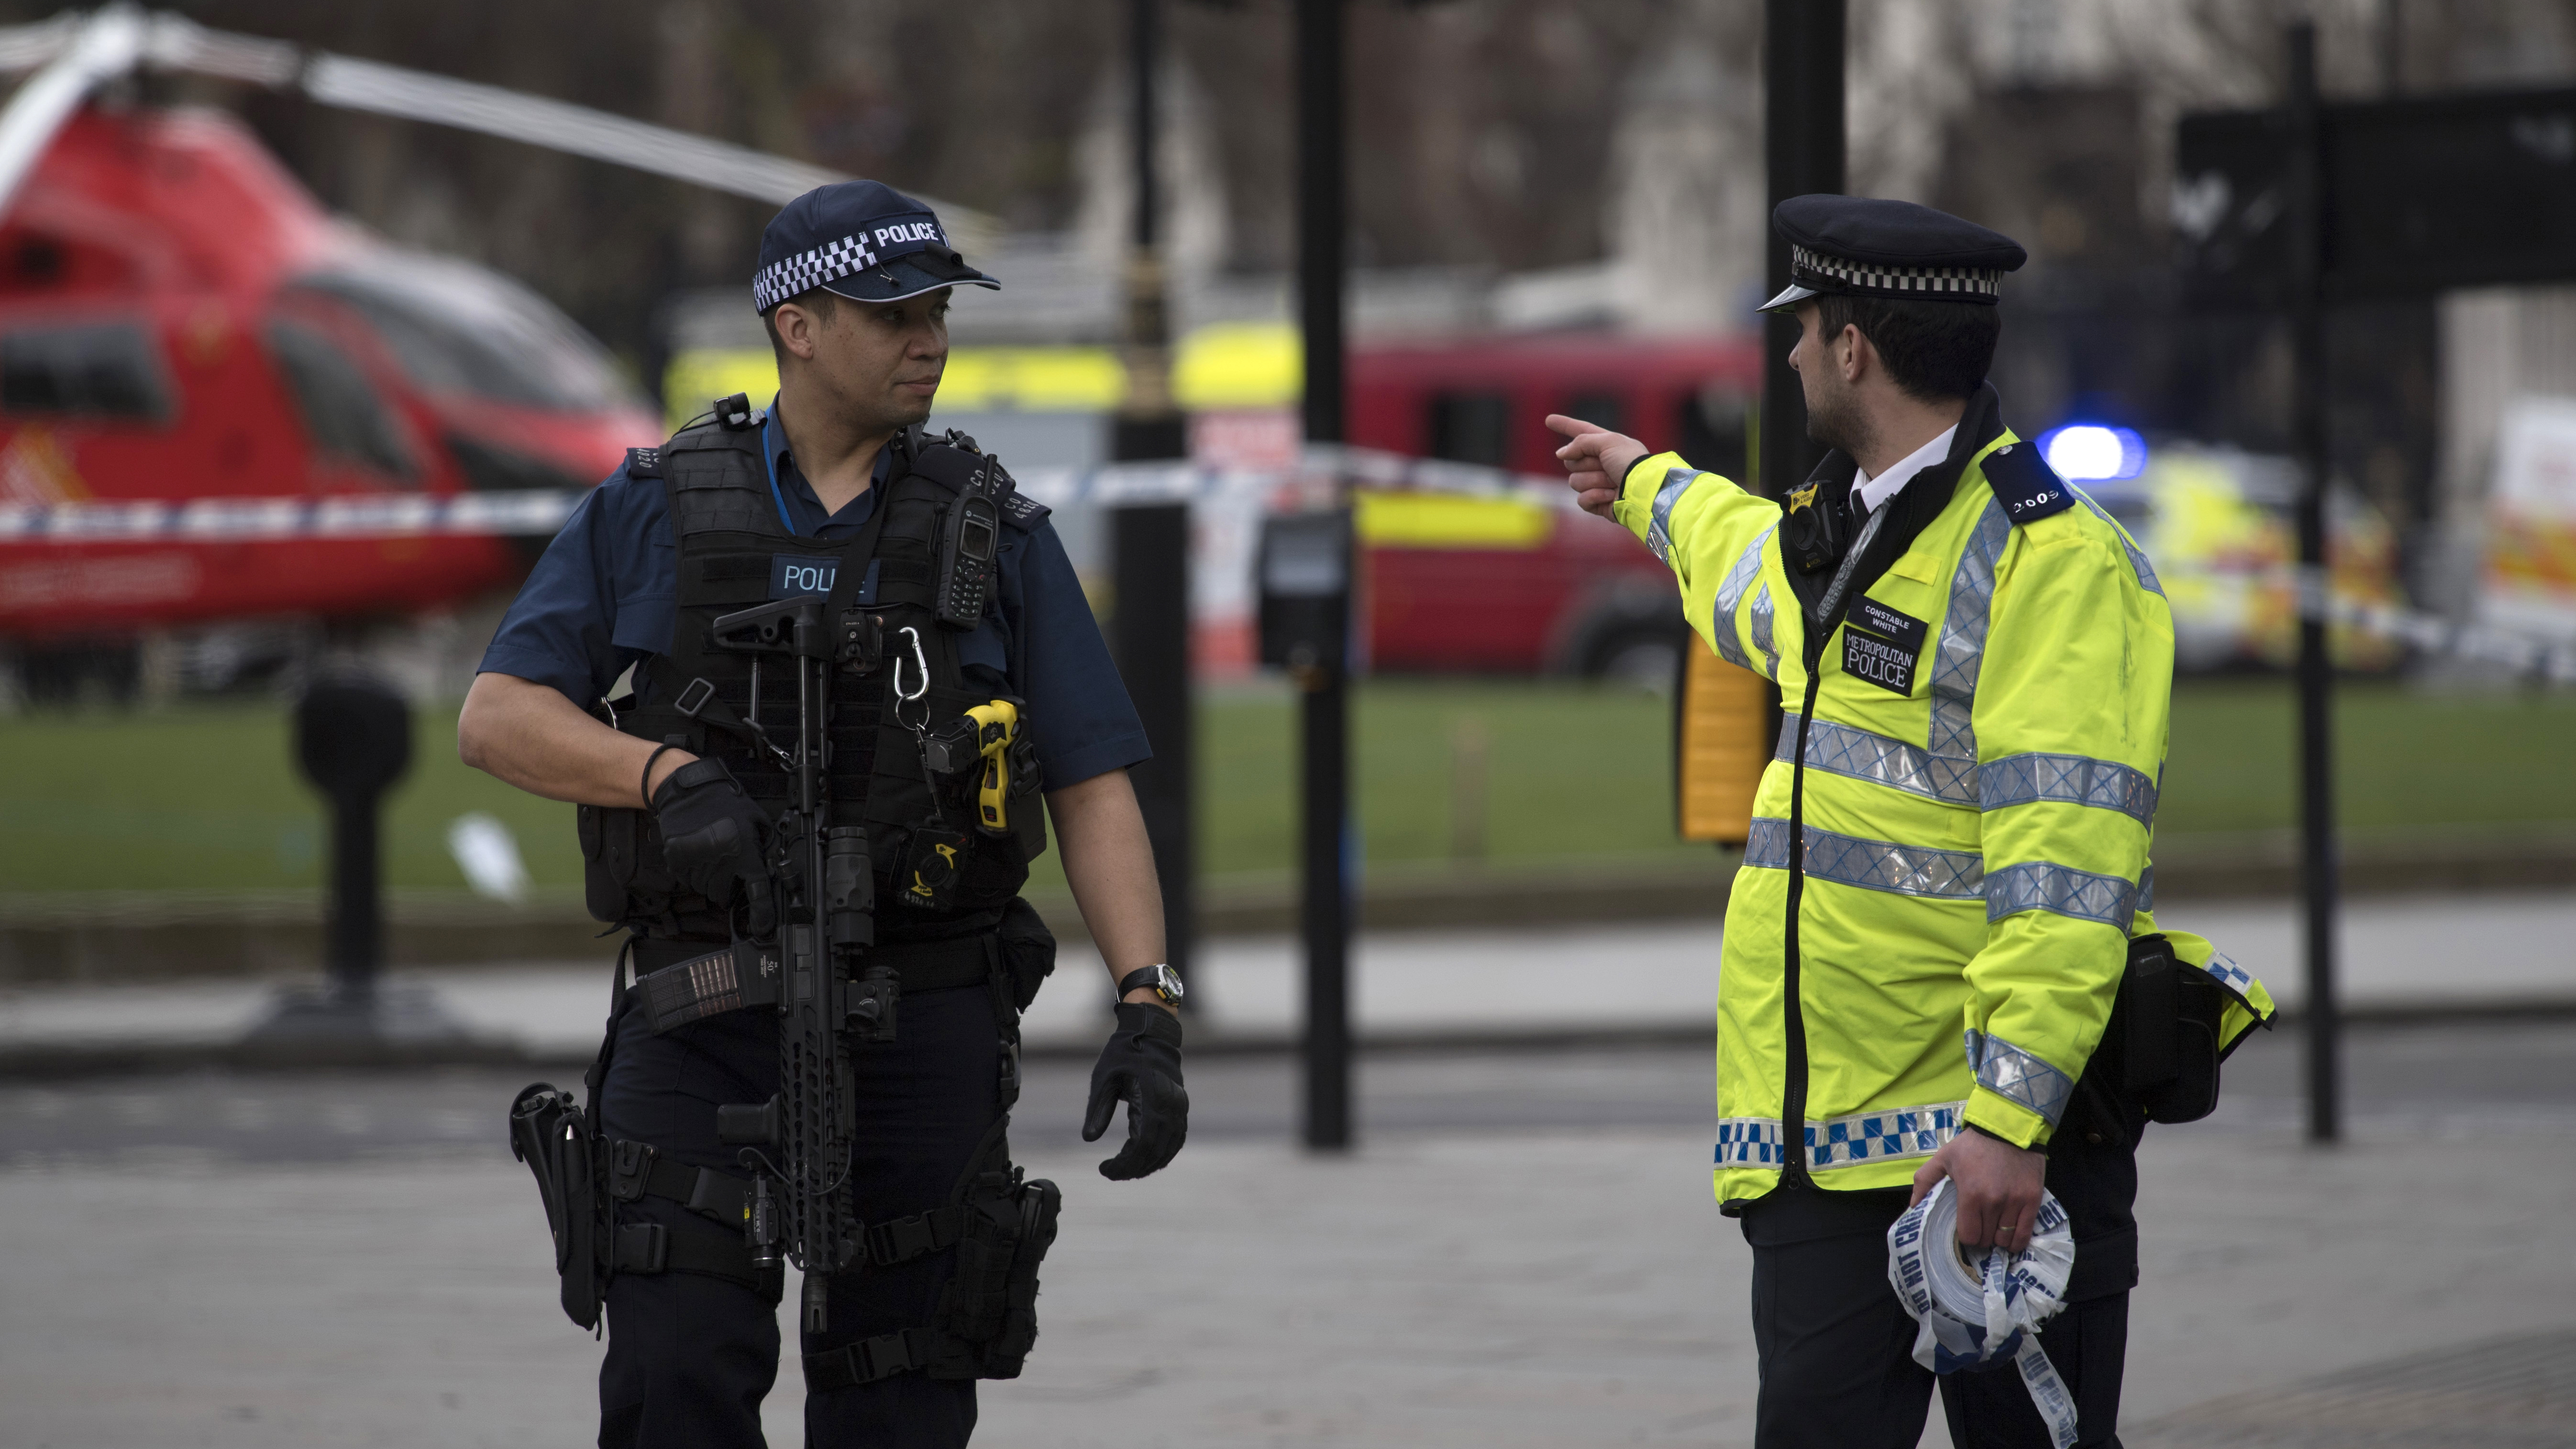 epa05863954 Armed police following major incidents outside the Houses of Parliament in central London, Britain, 22 March 2017. Scotland Yard said on 22 March 21017 the police were called to a firearms incident in the Westminister palace grounds and on Westminster Bridge amid reports of at least people killed and several other people injured in central London.  EPA/WILL OLIVER